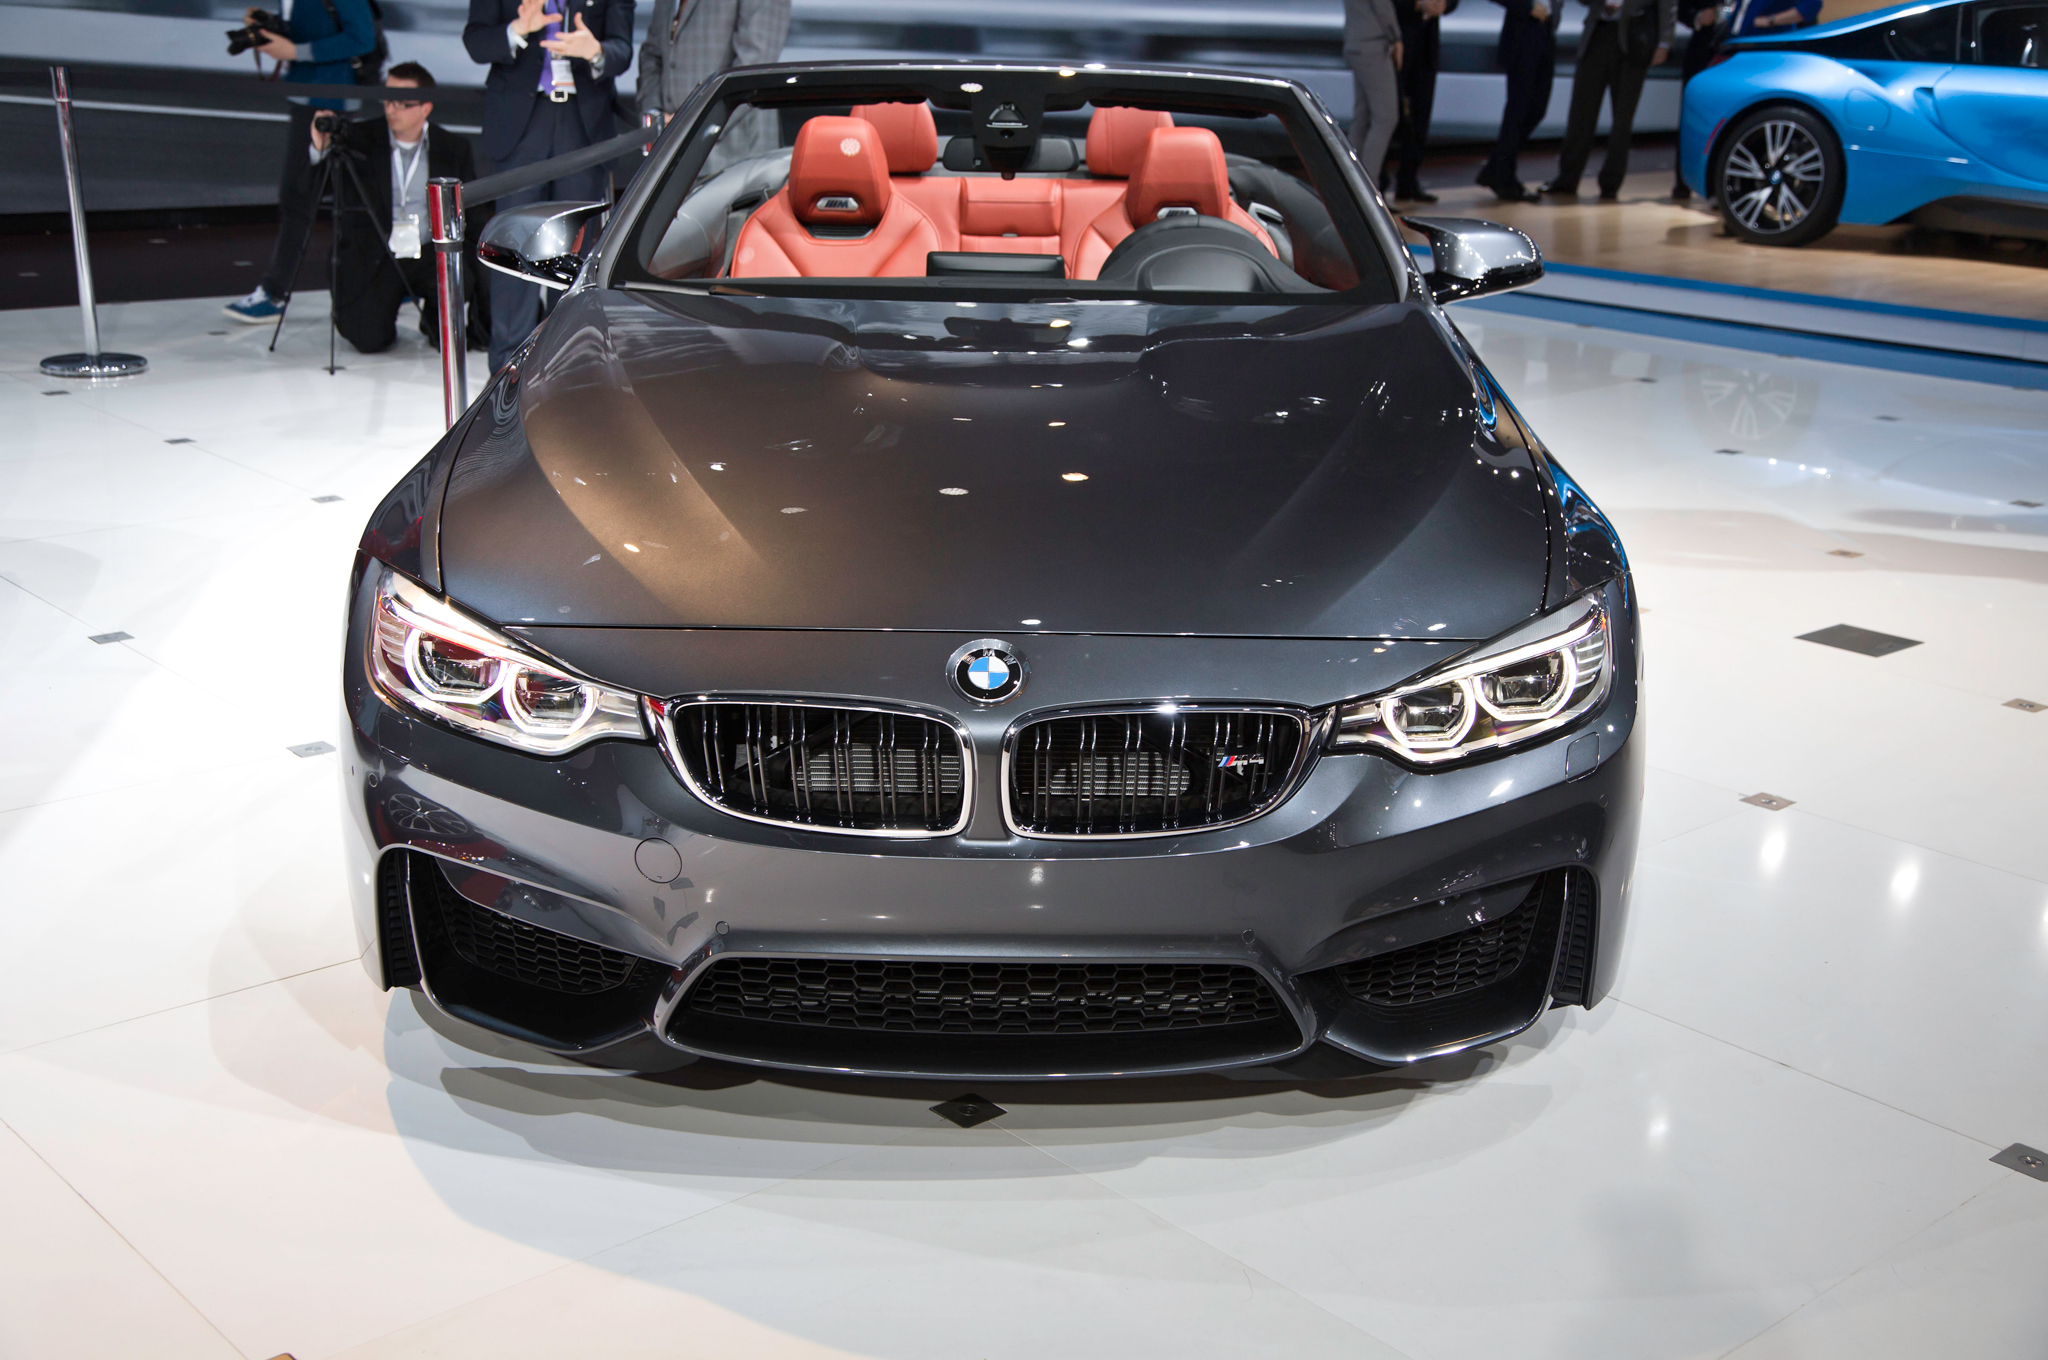 2015 Bmw M4 Convertible Front Design (Photo 36 of 50)